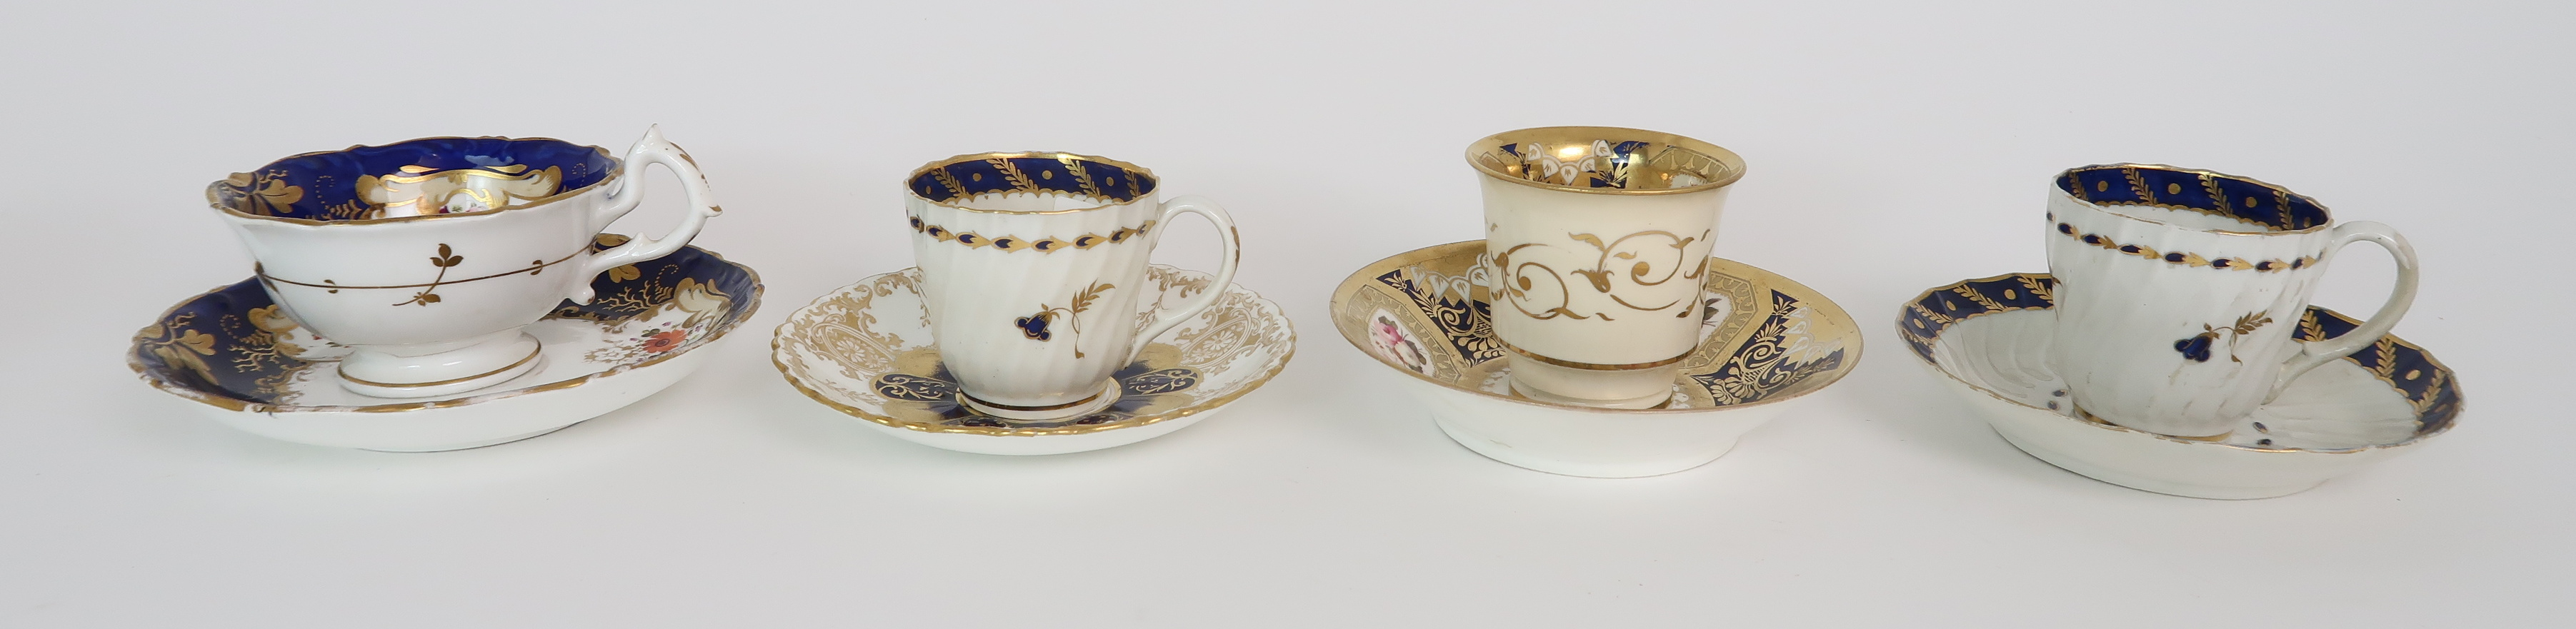 A COLLECTION OF 19TH CENTURY ENGLISH BLUE AND GILT DECORATED TEA AND COFFEE WARES including a - Image 7 of 23